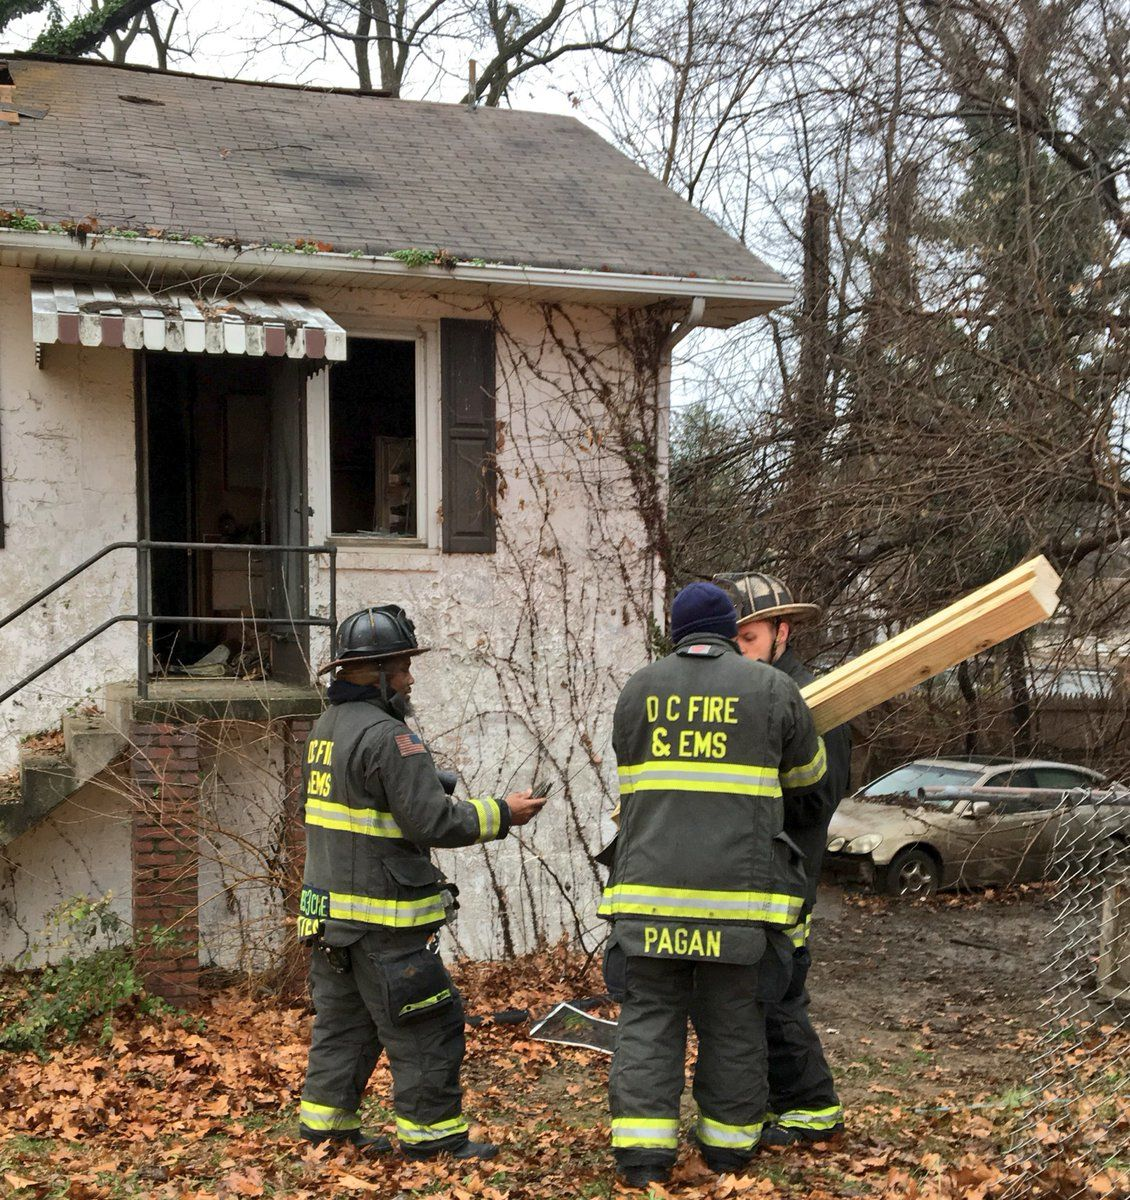 D.C. firefighters conduct shoring operations after the fire was put out. (Courtesy of DC Fire and EMS)